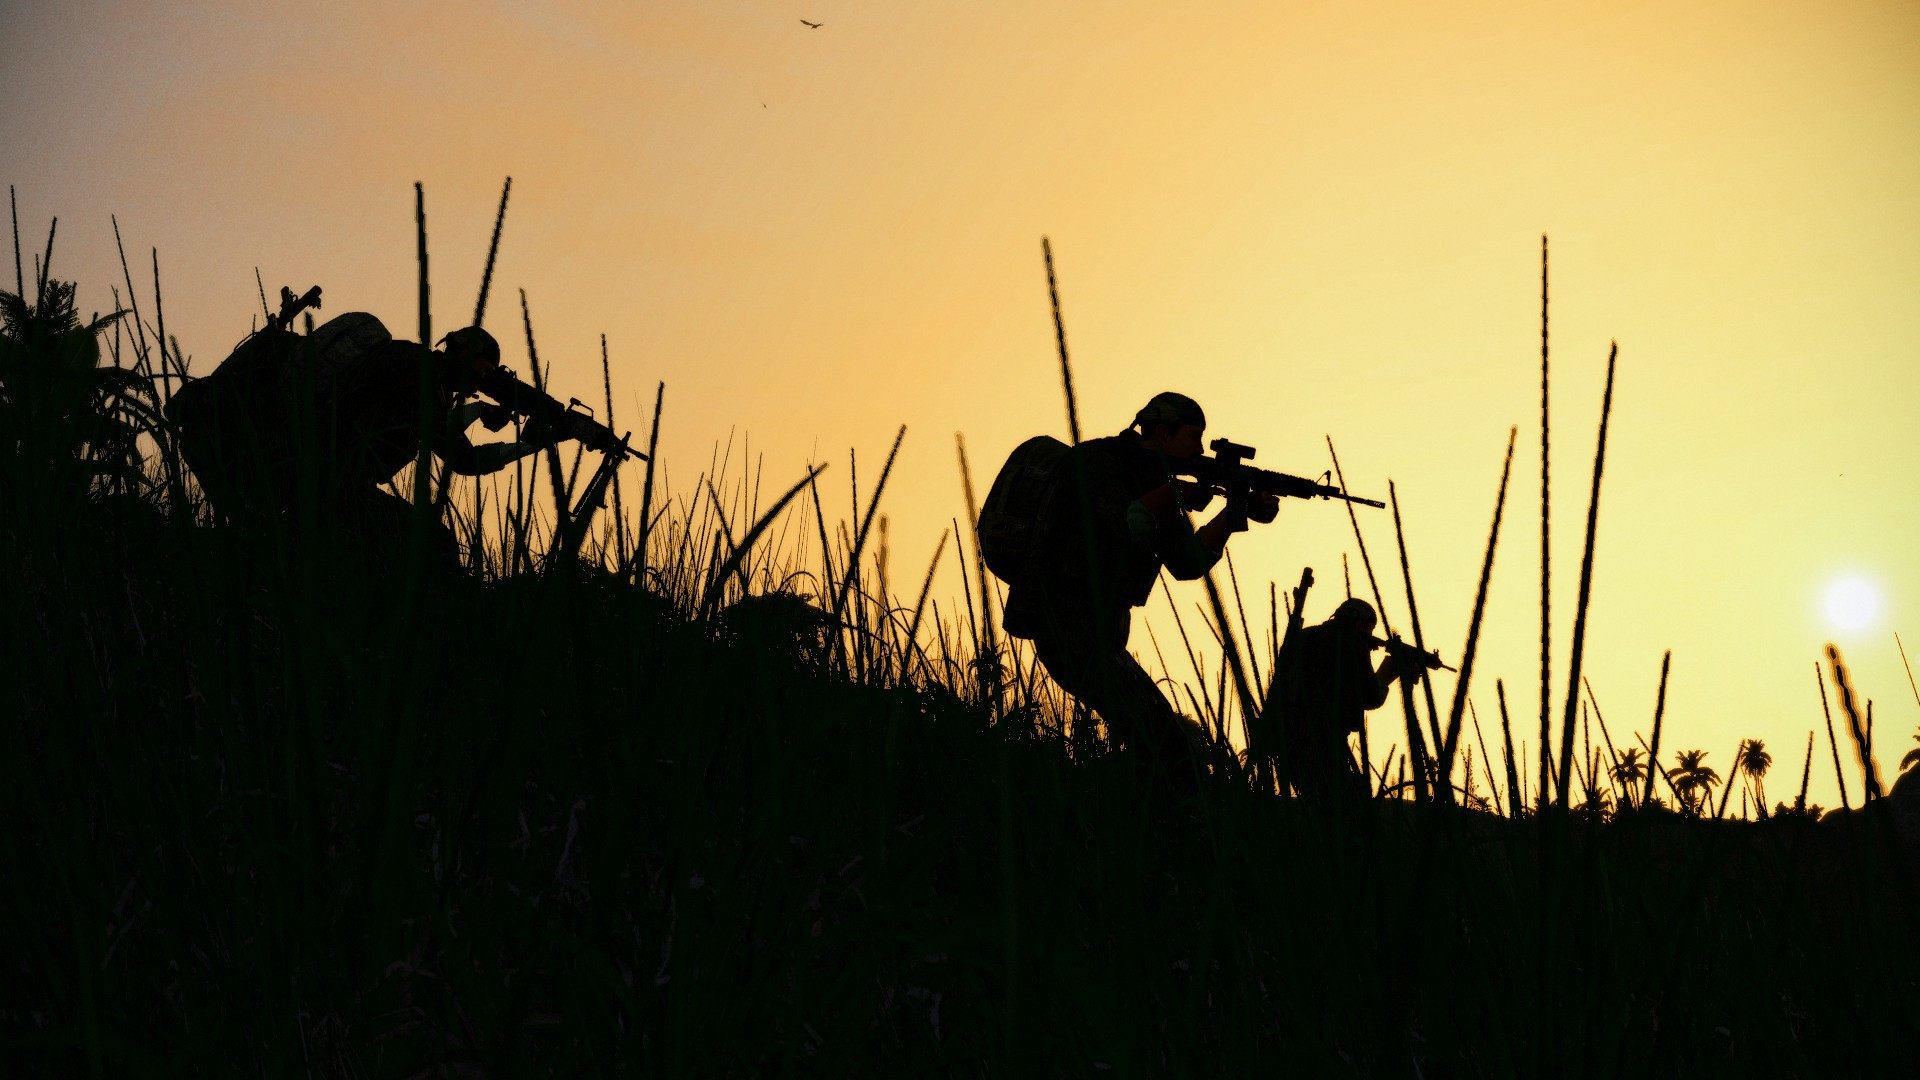 HD Army Wallpapers and Background Images For Download 1920 ...  |Army Wife Desktop Background